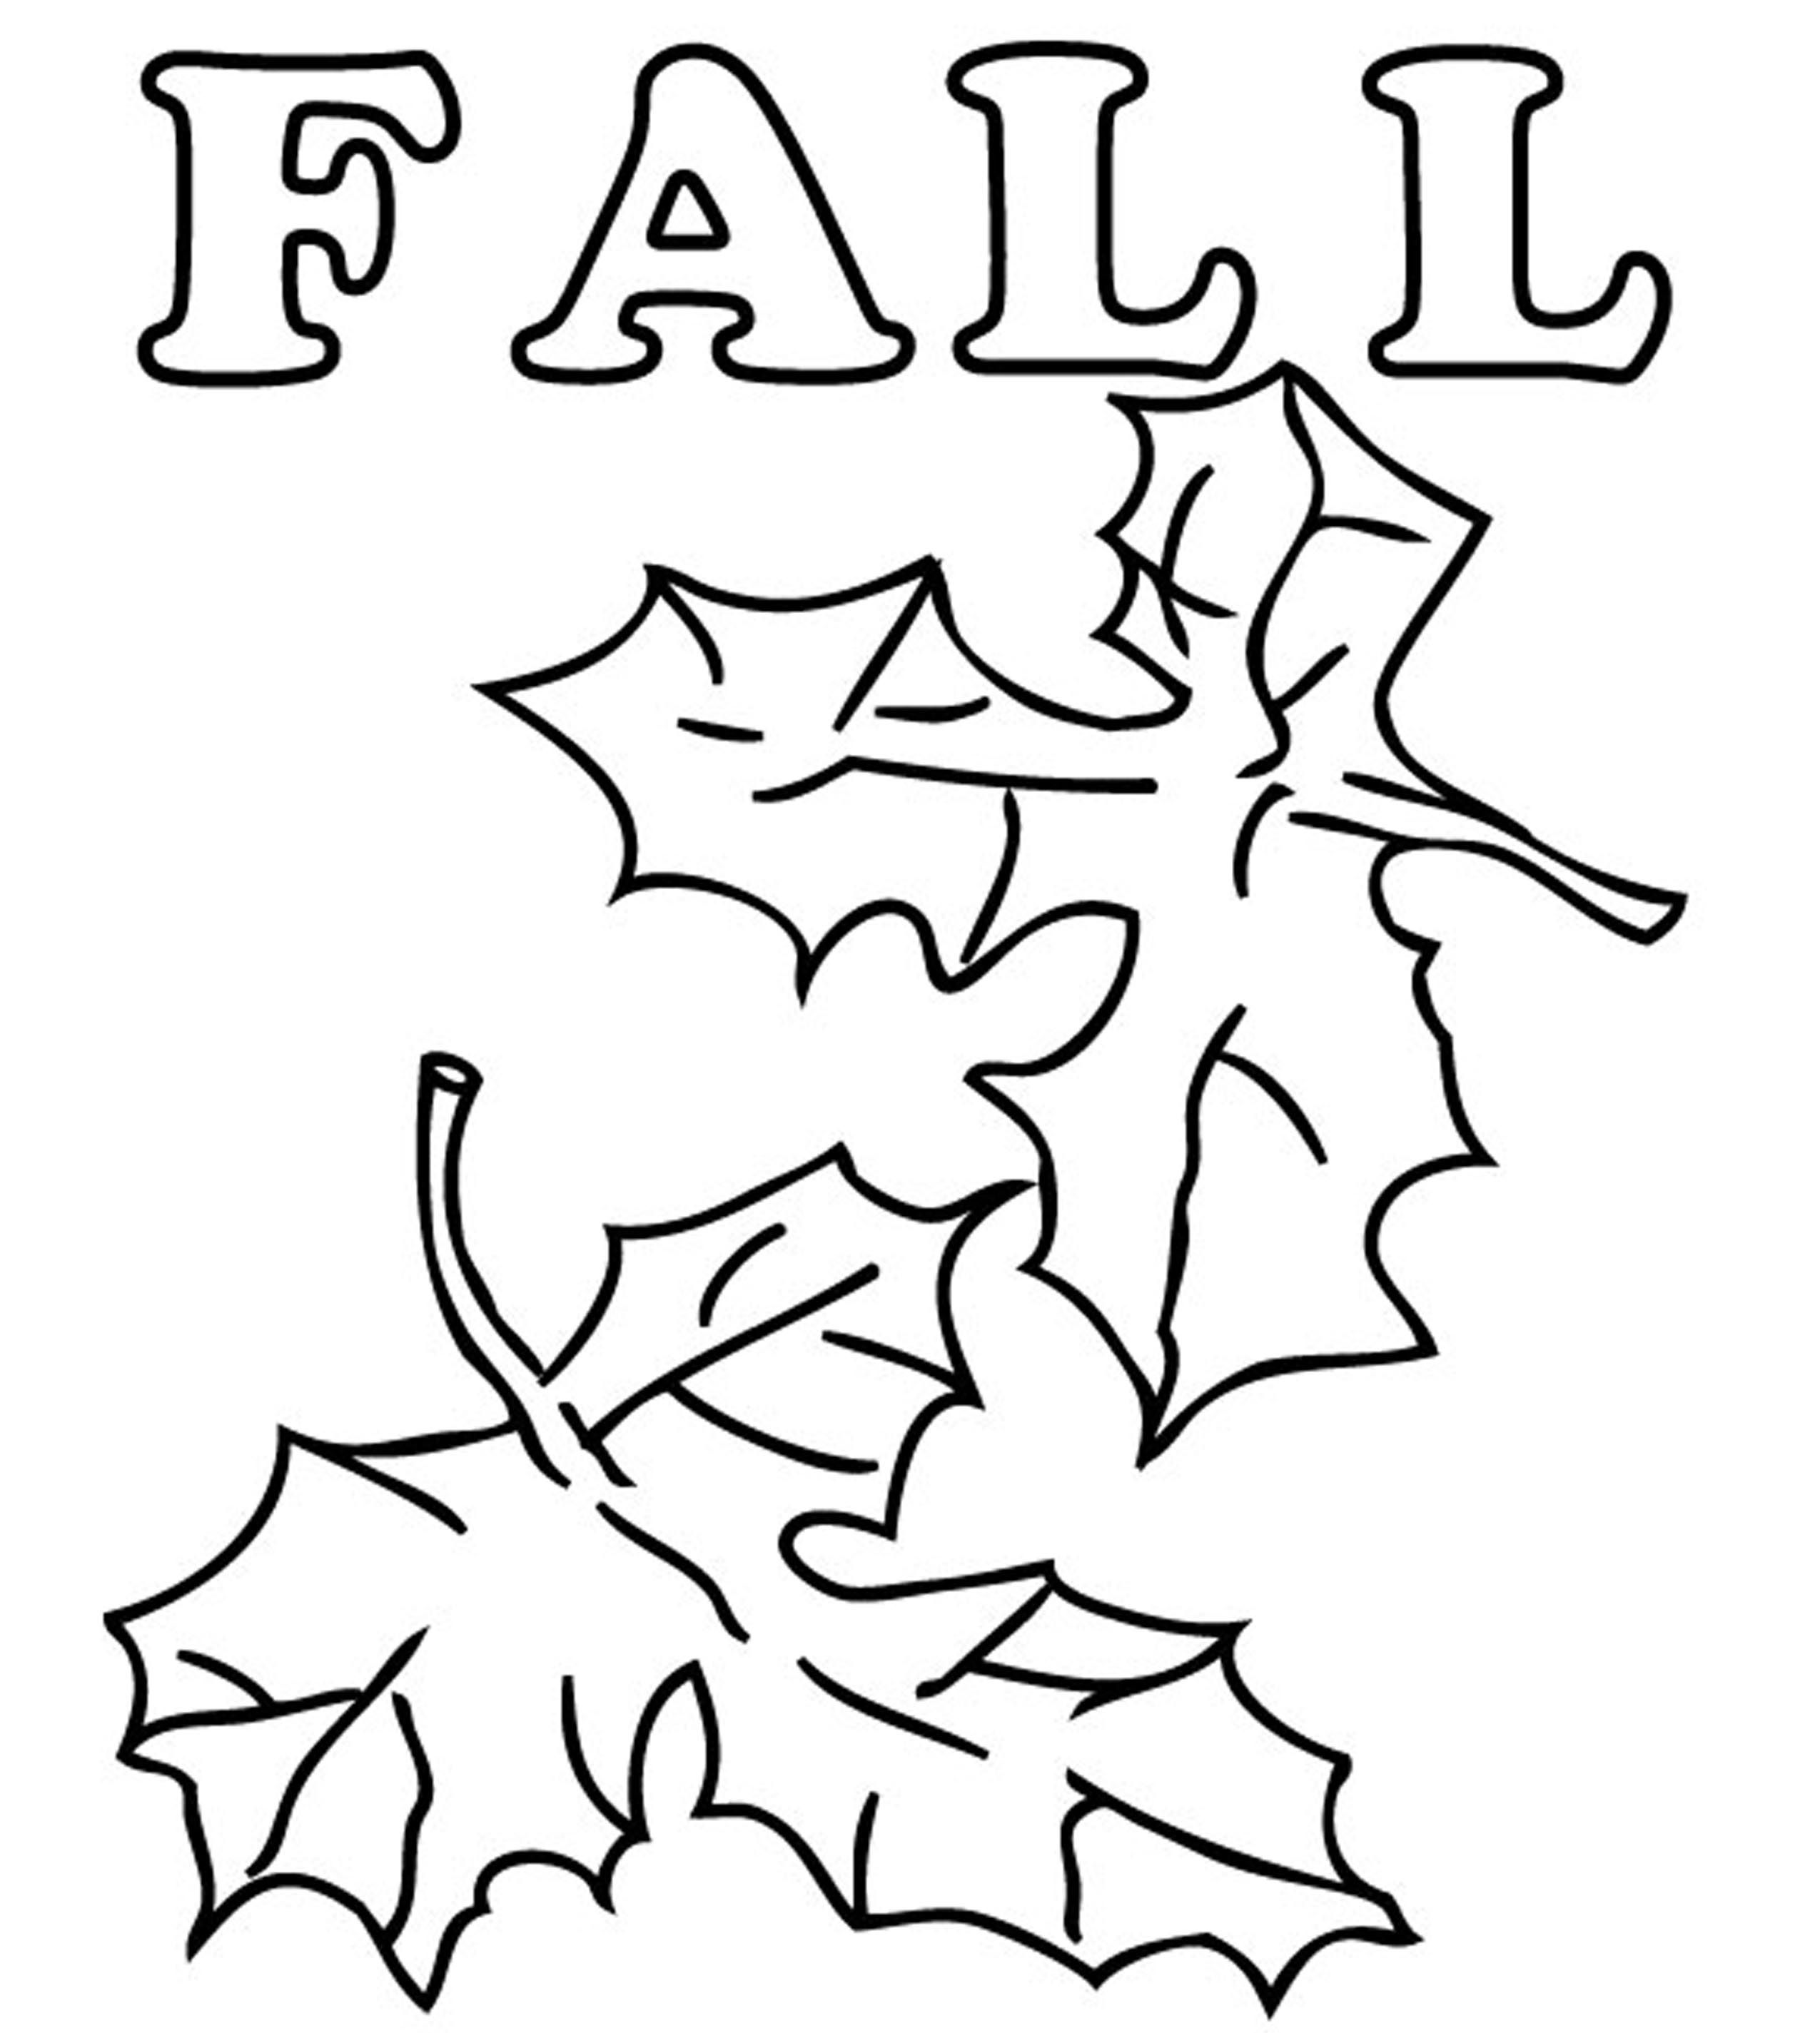 fall trees coloring pages autumn leaf coloring page coloring home trees pages coloring fall